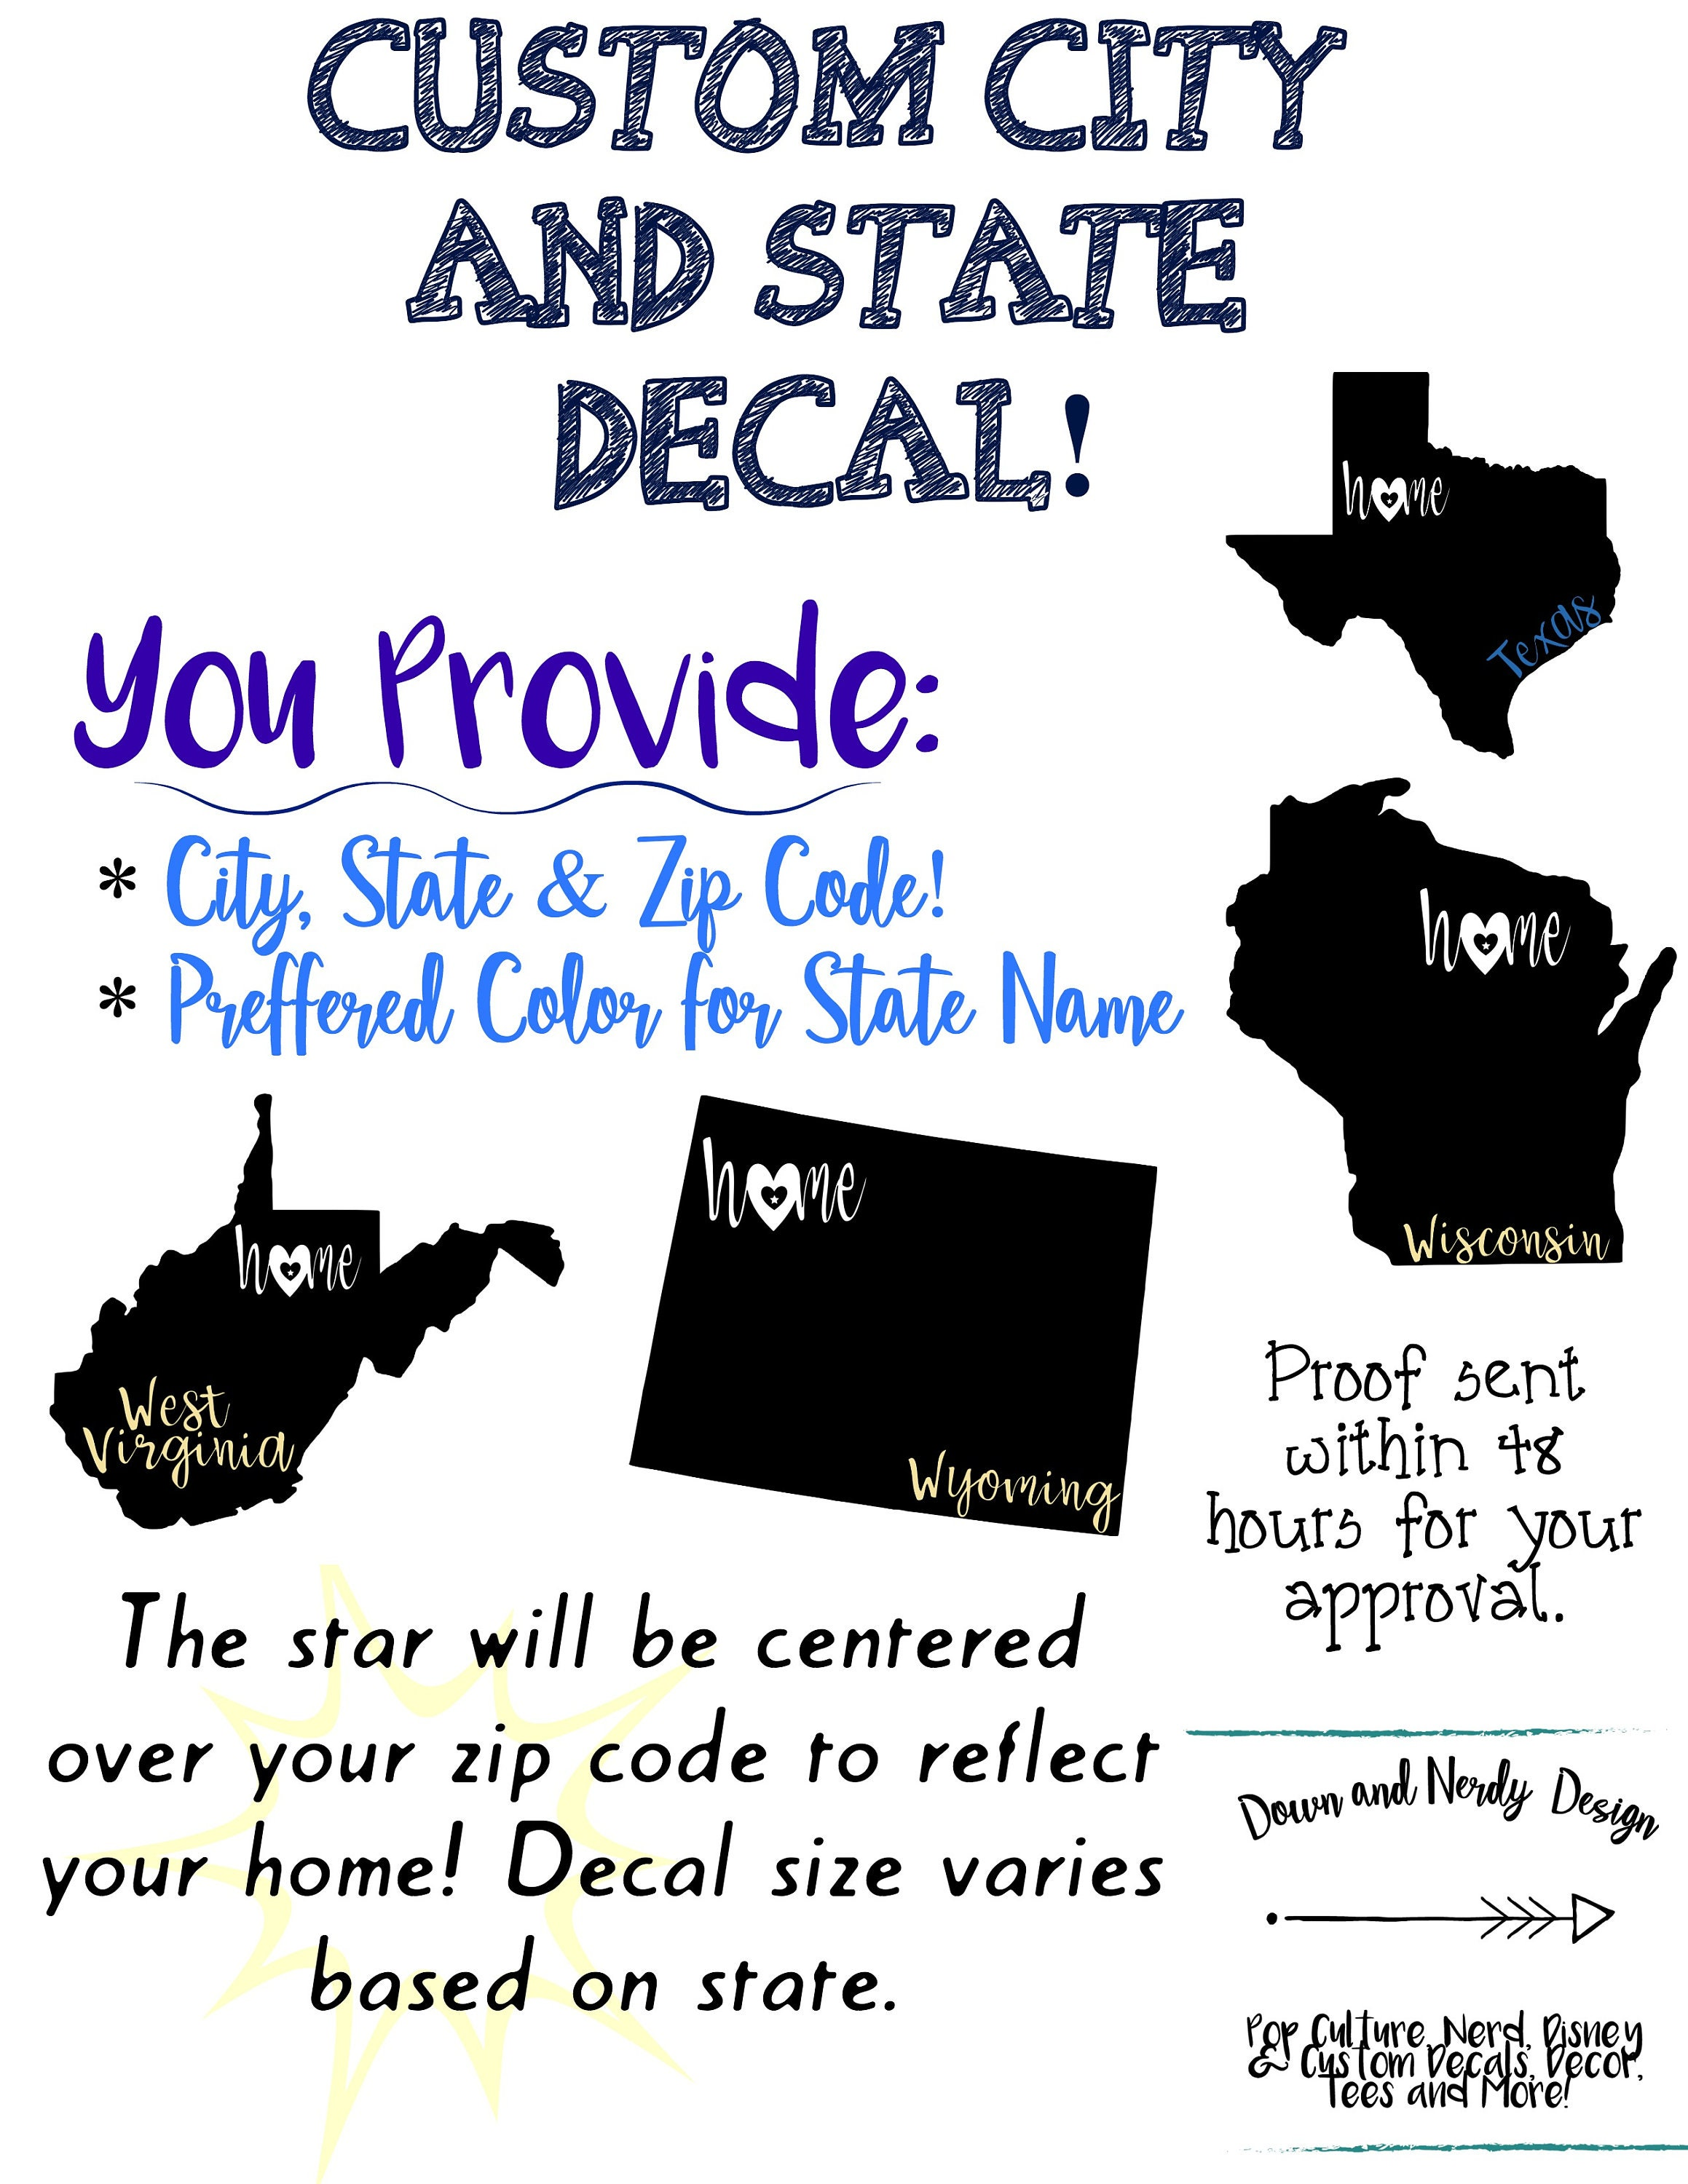 Home State Decal - All Fifty States! Any location! Customized hometown on 50 states and their abbreviations, 50 states nicknames, 50 states addicting games, 50 states numbers, 50 states maps, 50 states places, 50 states colleges and universities, 50 states rivers, 50 states white pages, 50 states state, 50 states practice sheet, printable united states postal codes, 50 states numbered, 50 states dates, 50 states movies, 50 states year founded, 50 states quilt pattern, 50 states word bank, 50 states largest to smallest, 50 states coloring activity,